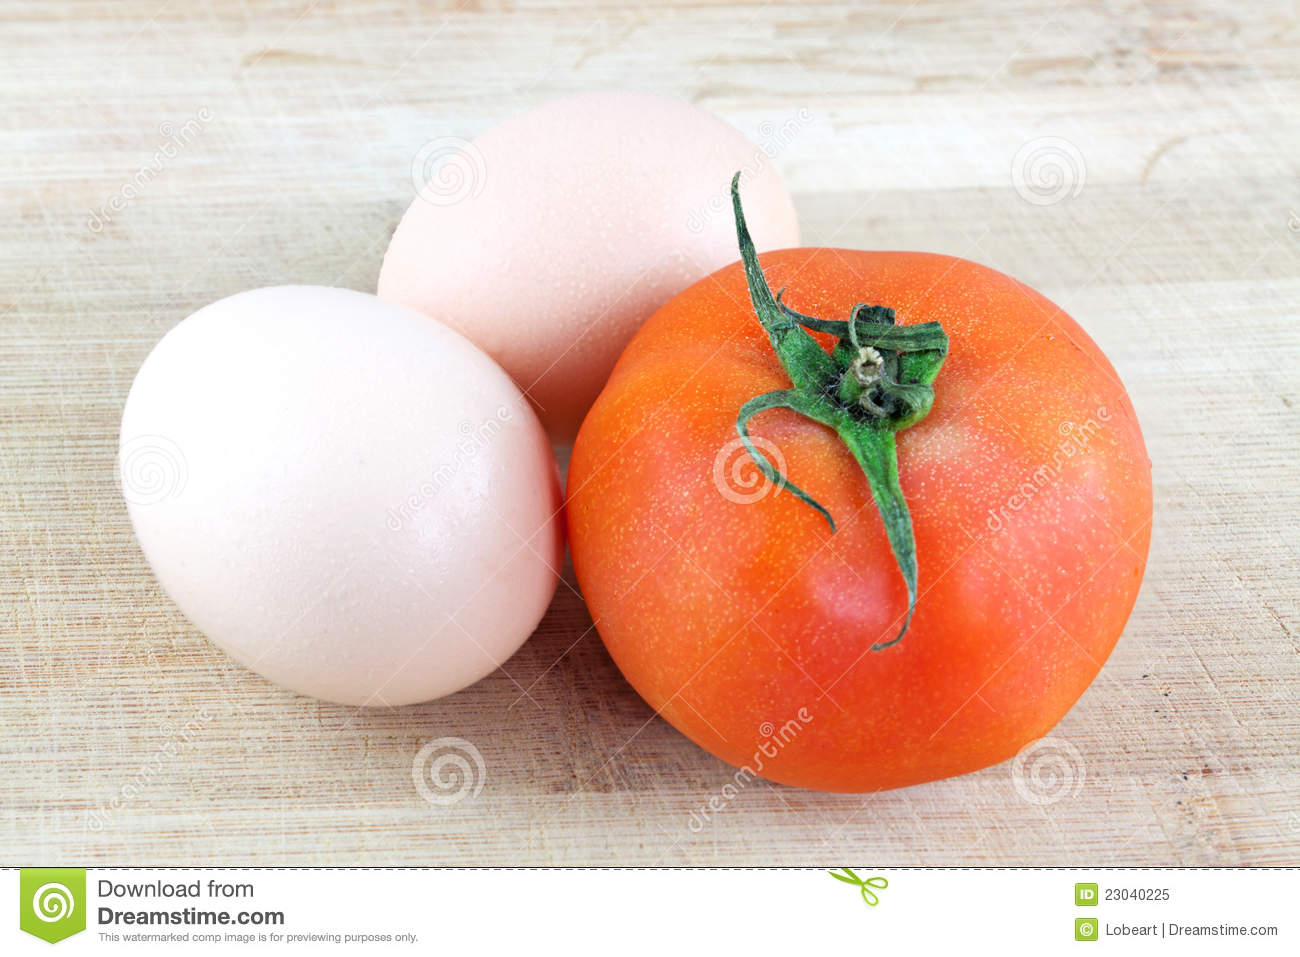 Eggs And Tomatoes Royalty Free Stock Photo - Image: 23040225